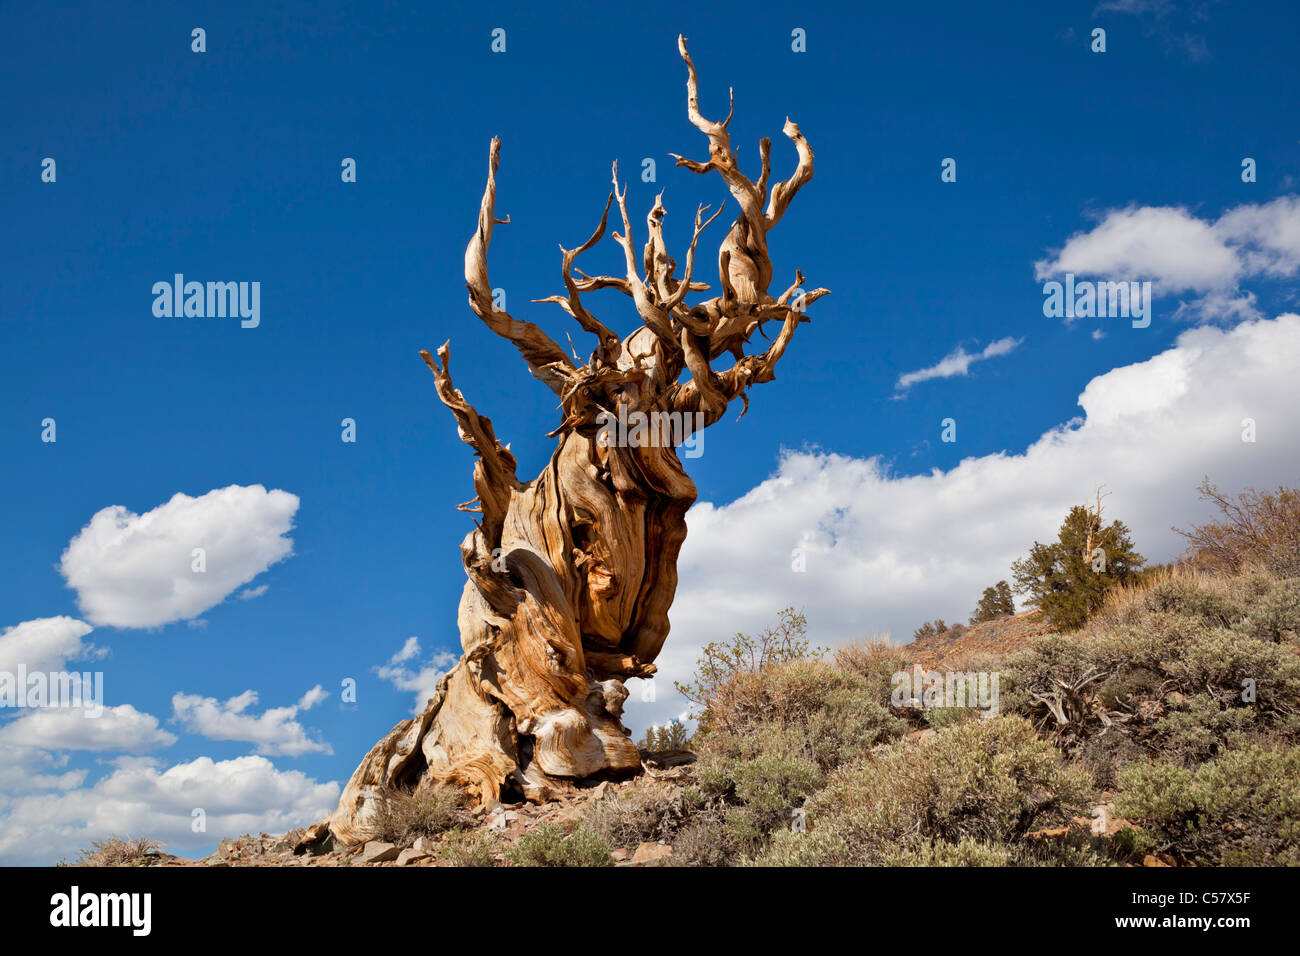 The Ancient bristlecone pine Forest Inyo national Forest California USA United States of America - Stock Image